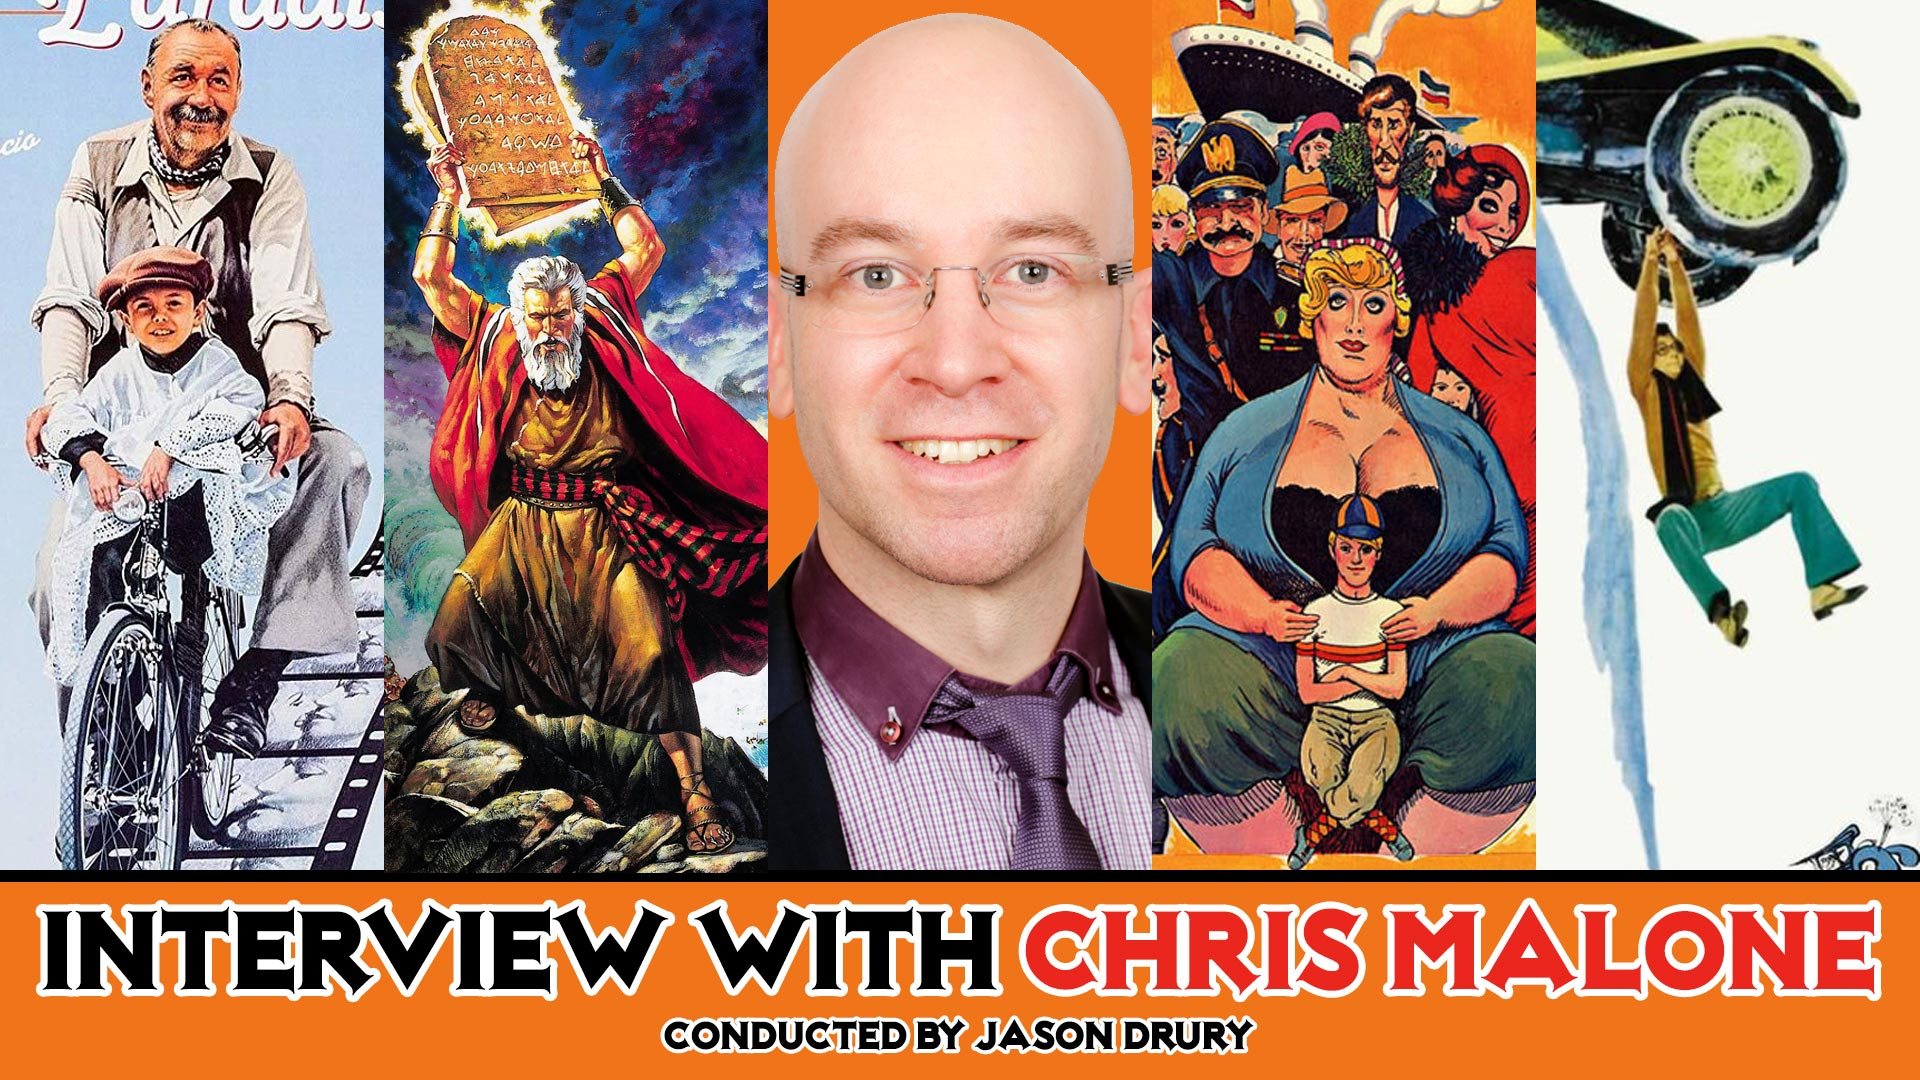 INTERVIEW WITH CHRIS MALONE